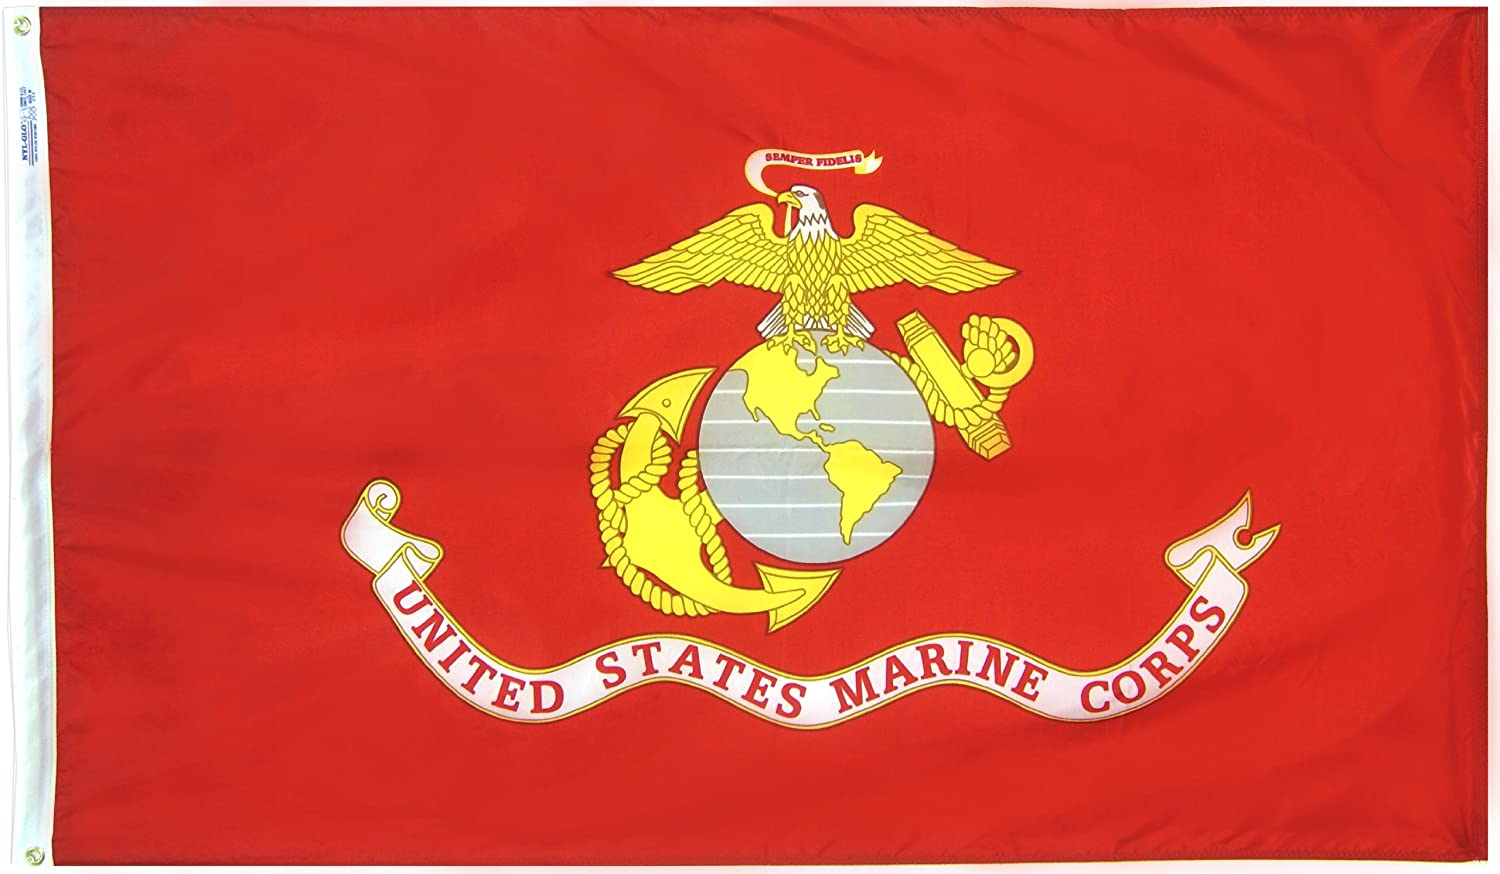 Beautiful Wallpaper Logo Usmc - 81sQR0xte1L  Perfect Image Reference_35270.jpg